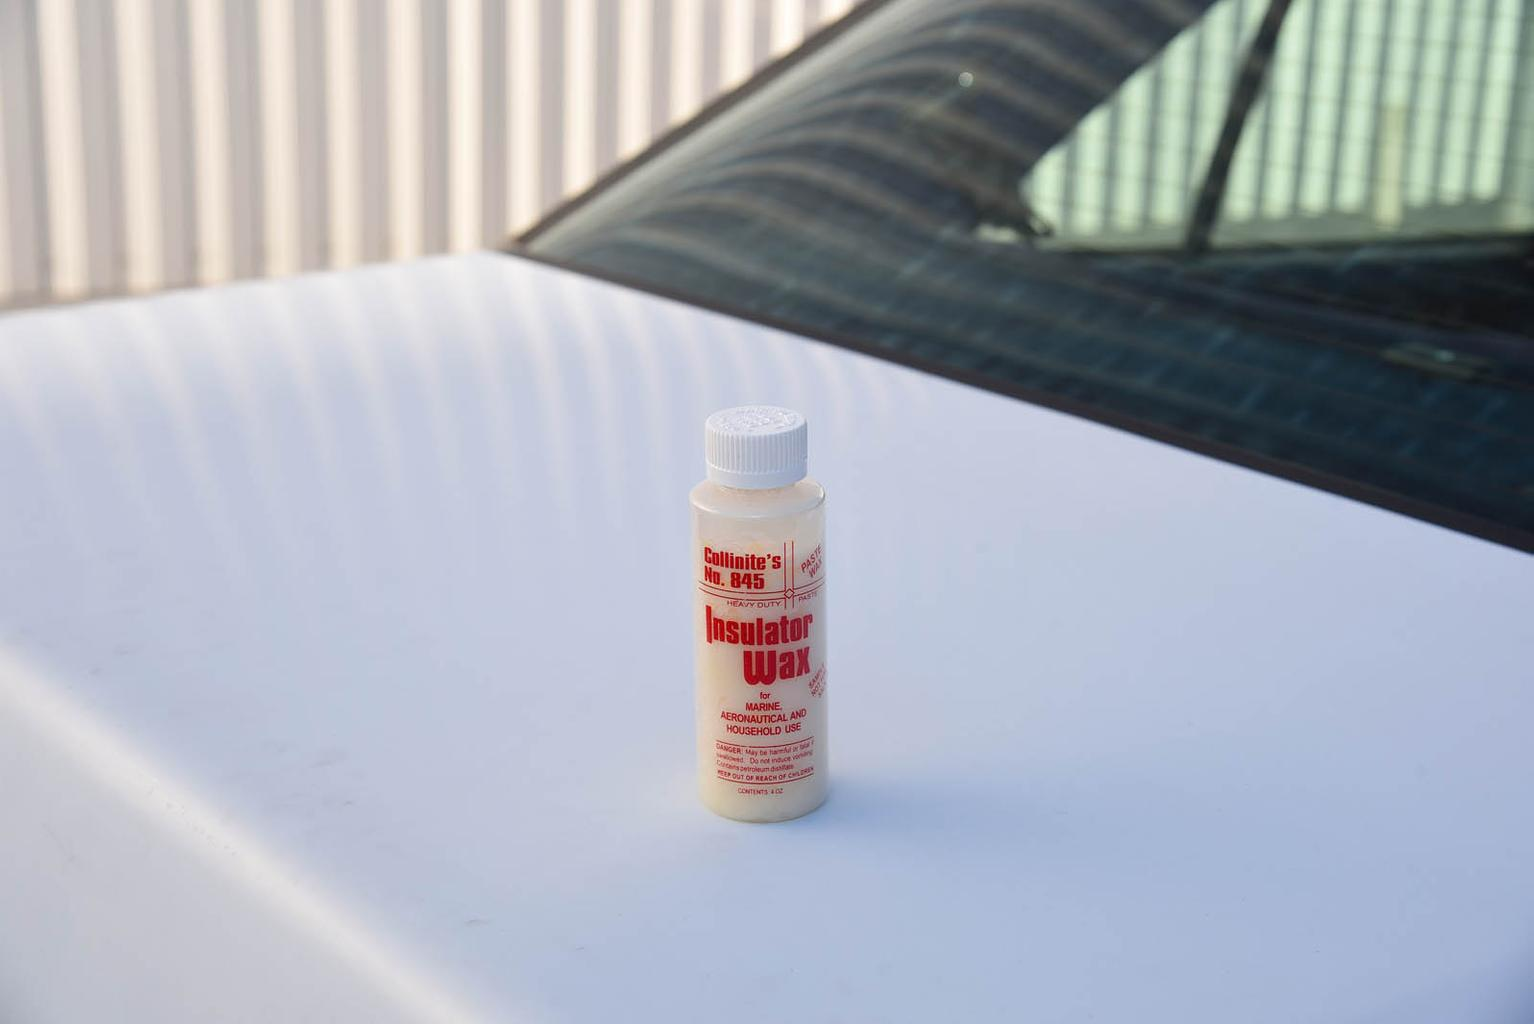 What is the best car wax 2018?